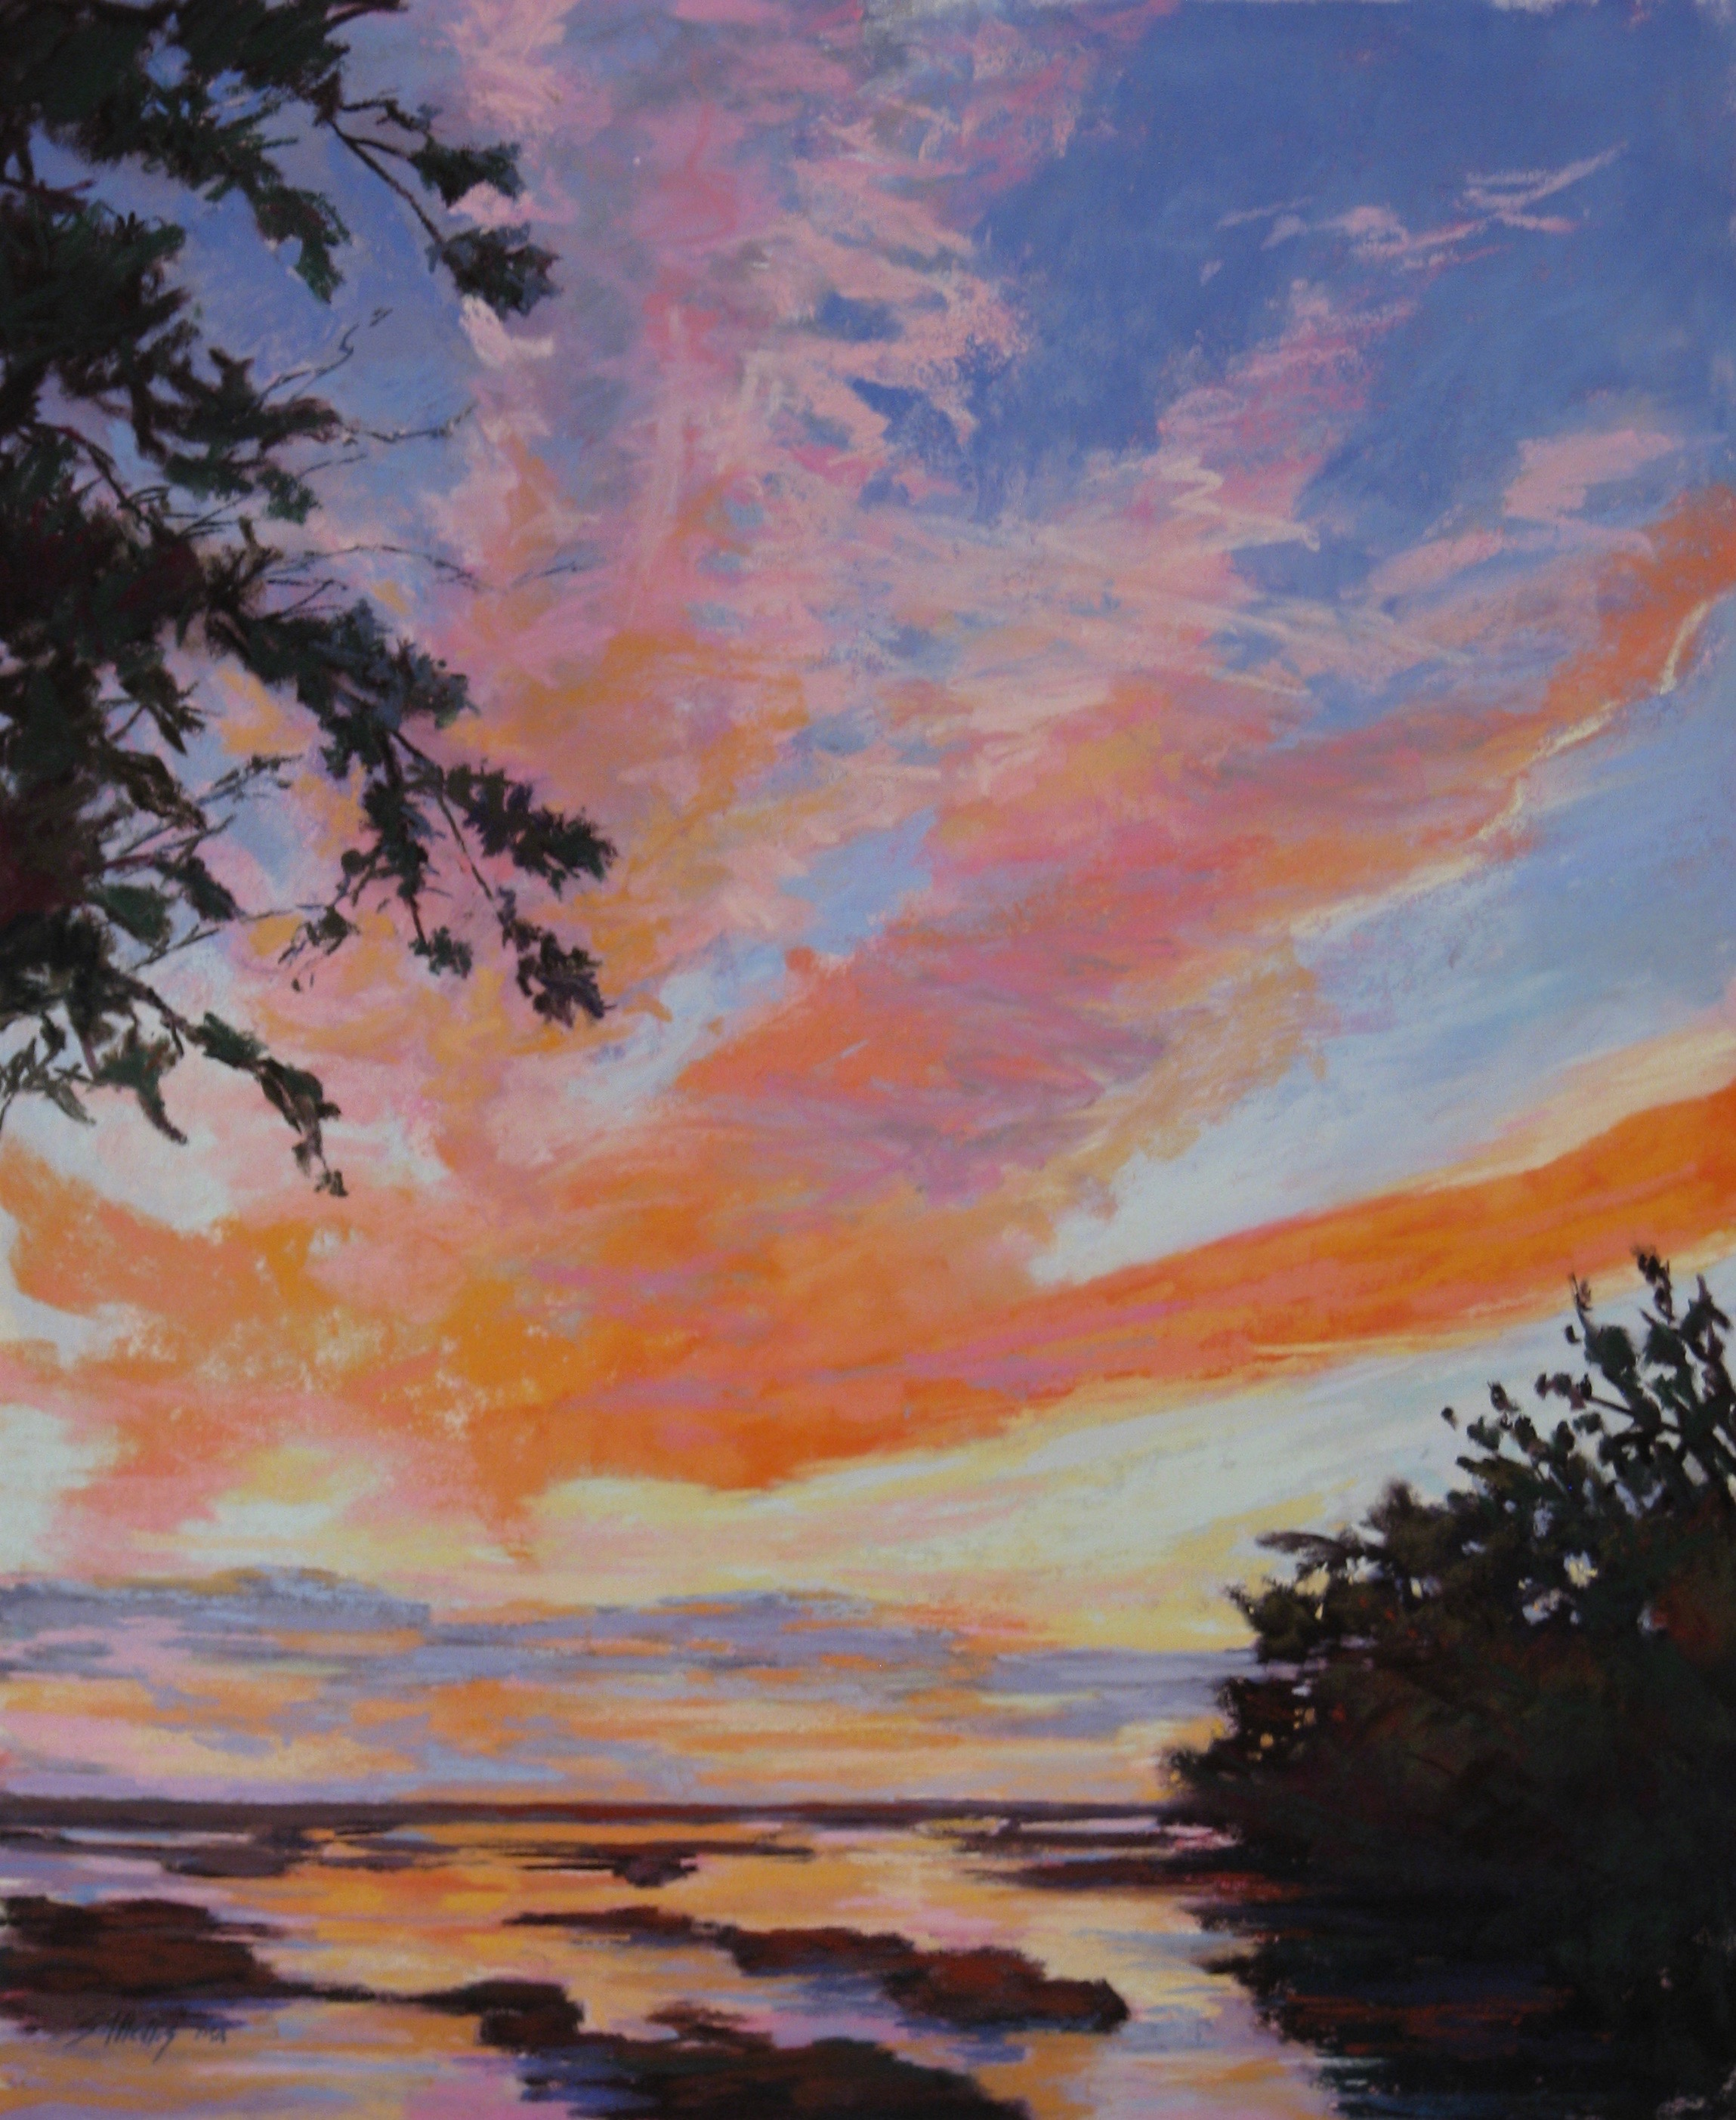 Pastel Society of Cape Cod - For Pastels Only - CAPE COD CULTURAL CENTER, SO. YARMOUTH, MAJULY 29 - AUGUST 11AMAZING GRACE  - 12 X 16 - OASTEK